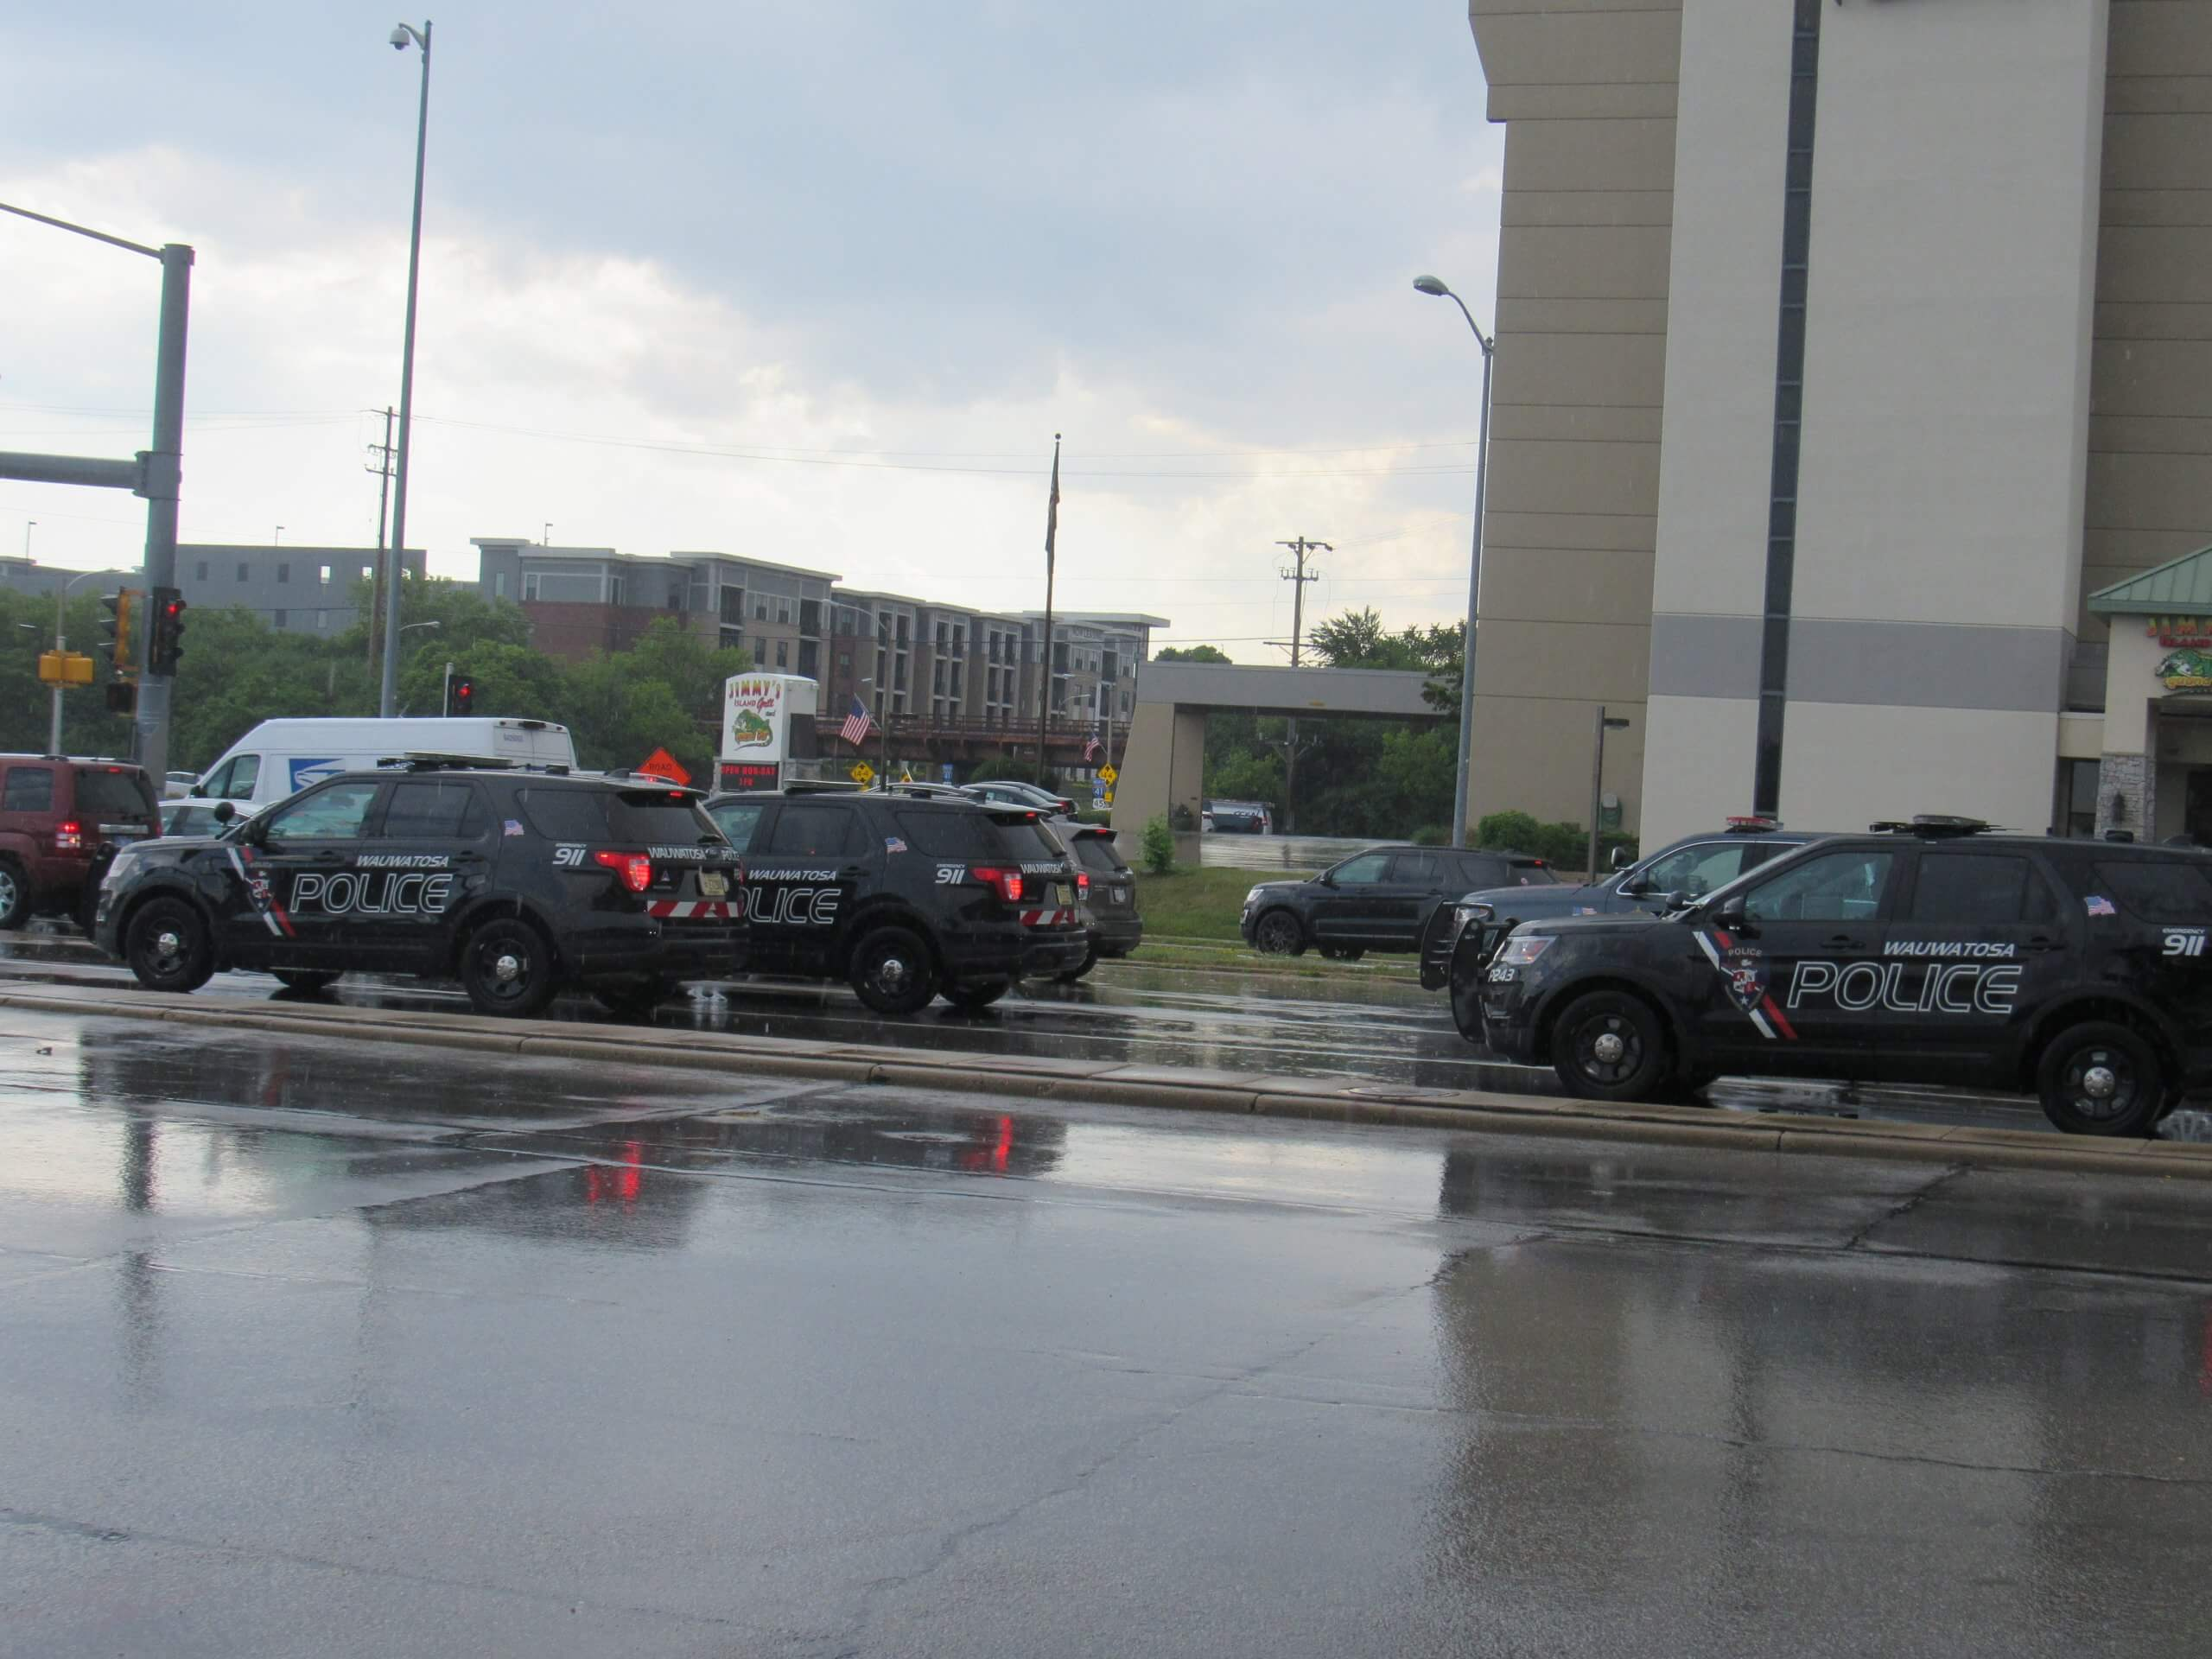 Police units gather and begin rolling out. (Photo by Isiah Holmes)